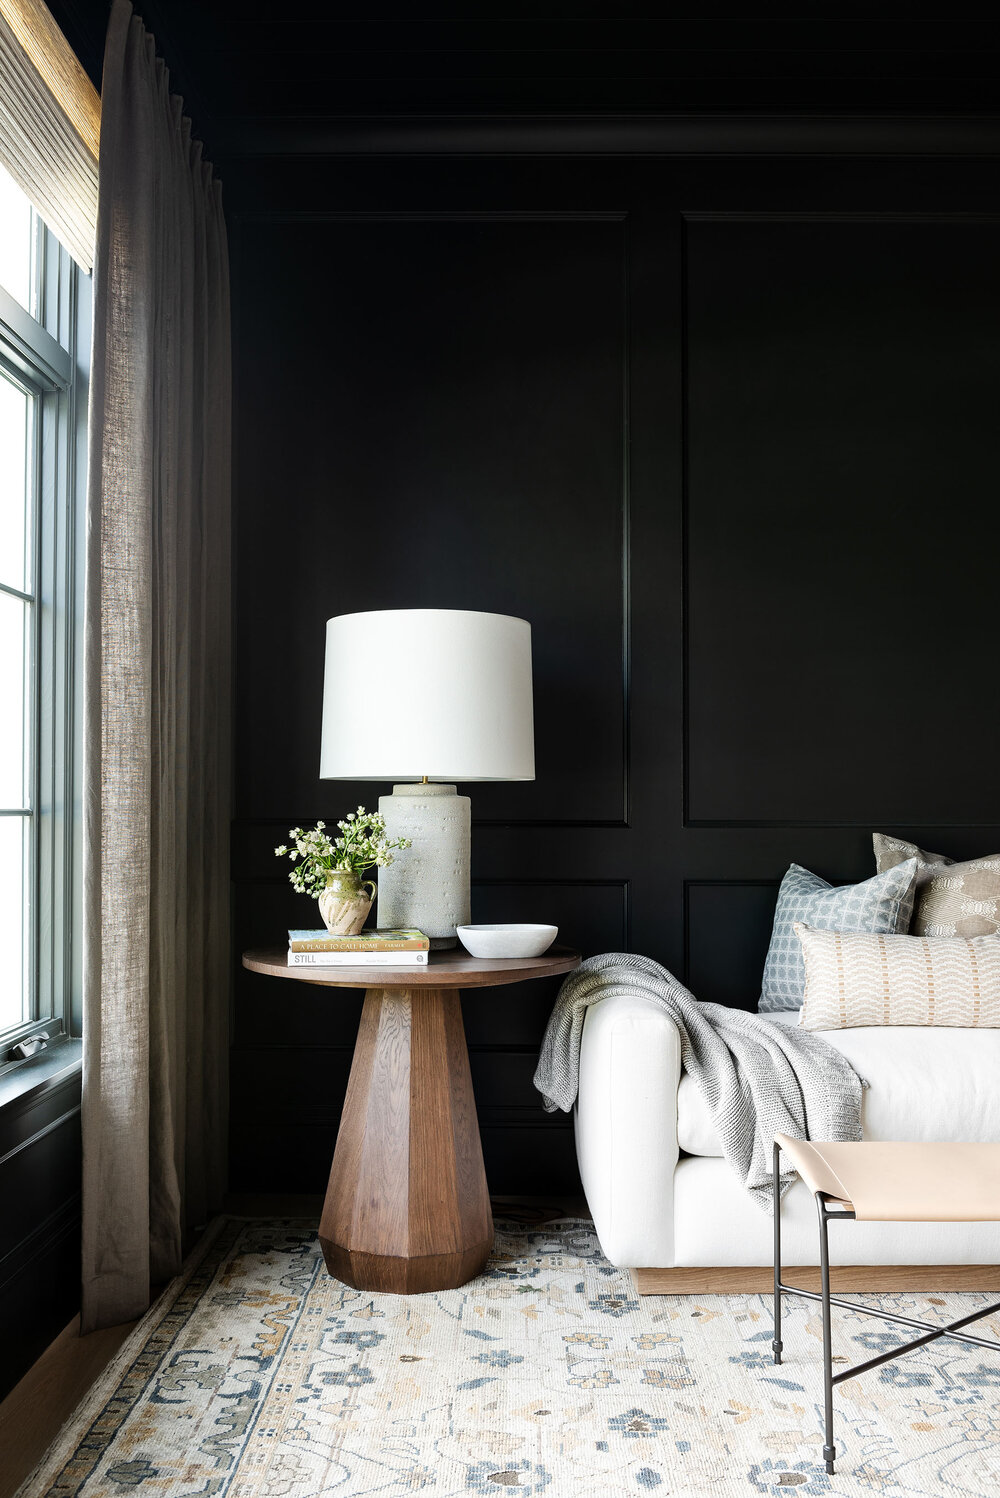 Tips For Choosing a Side Table